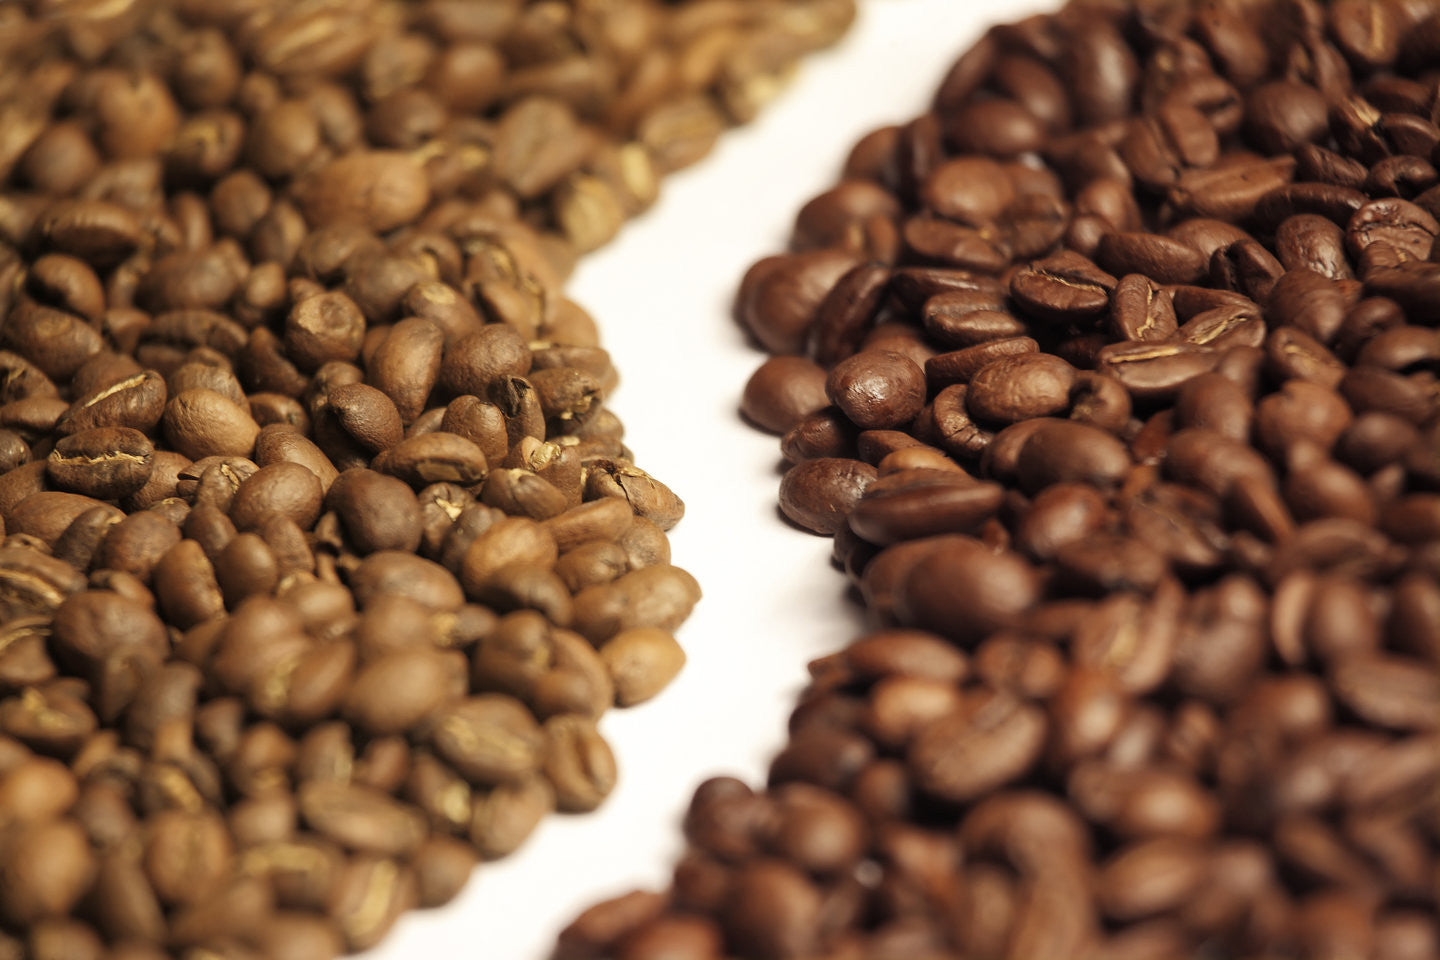 What's the difference between Arabica and Robusta coffee beans?